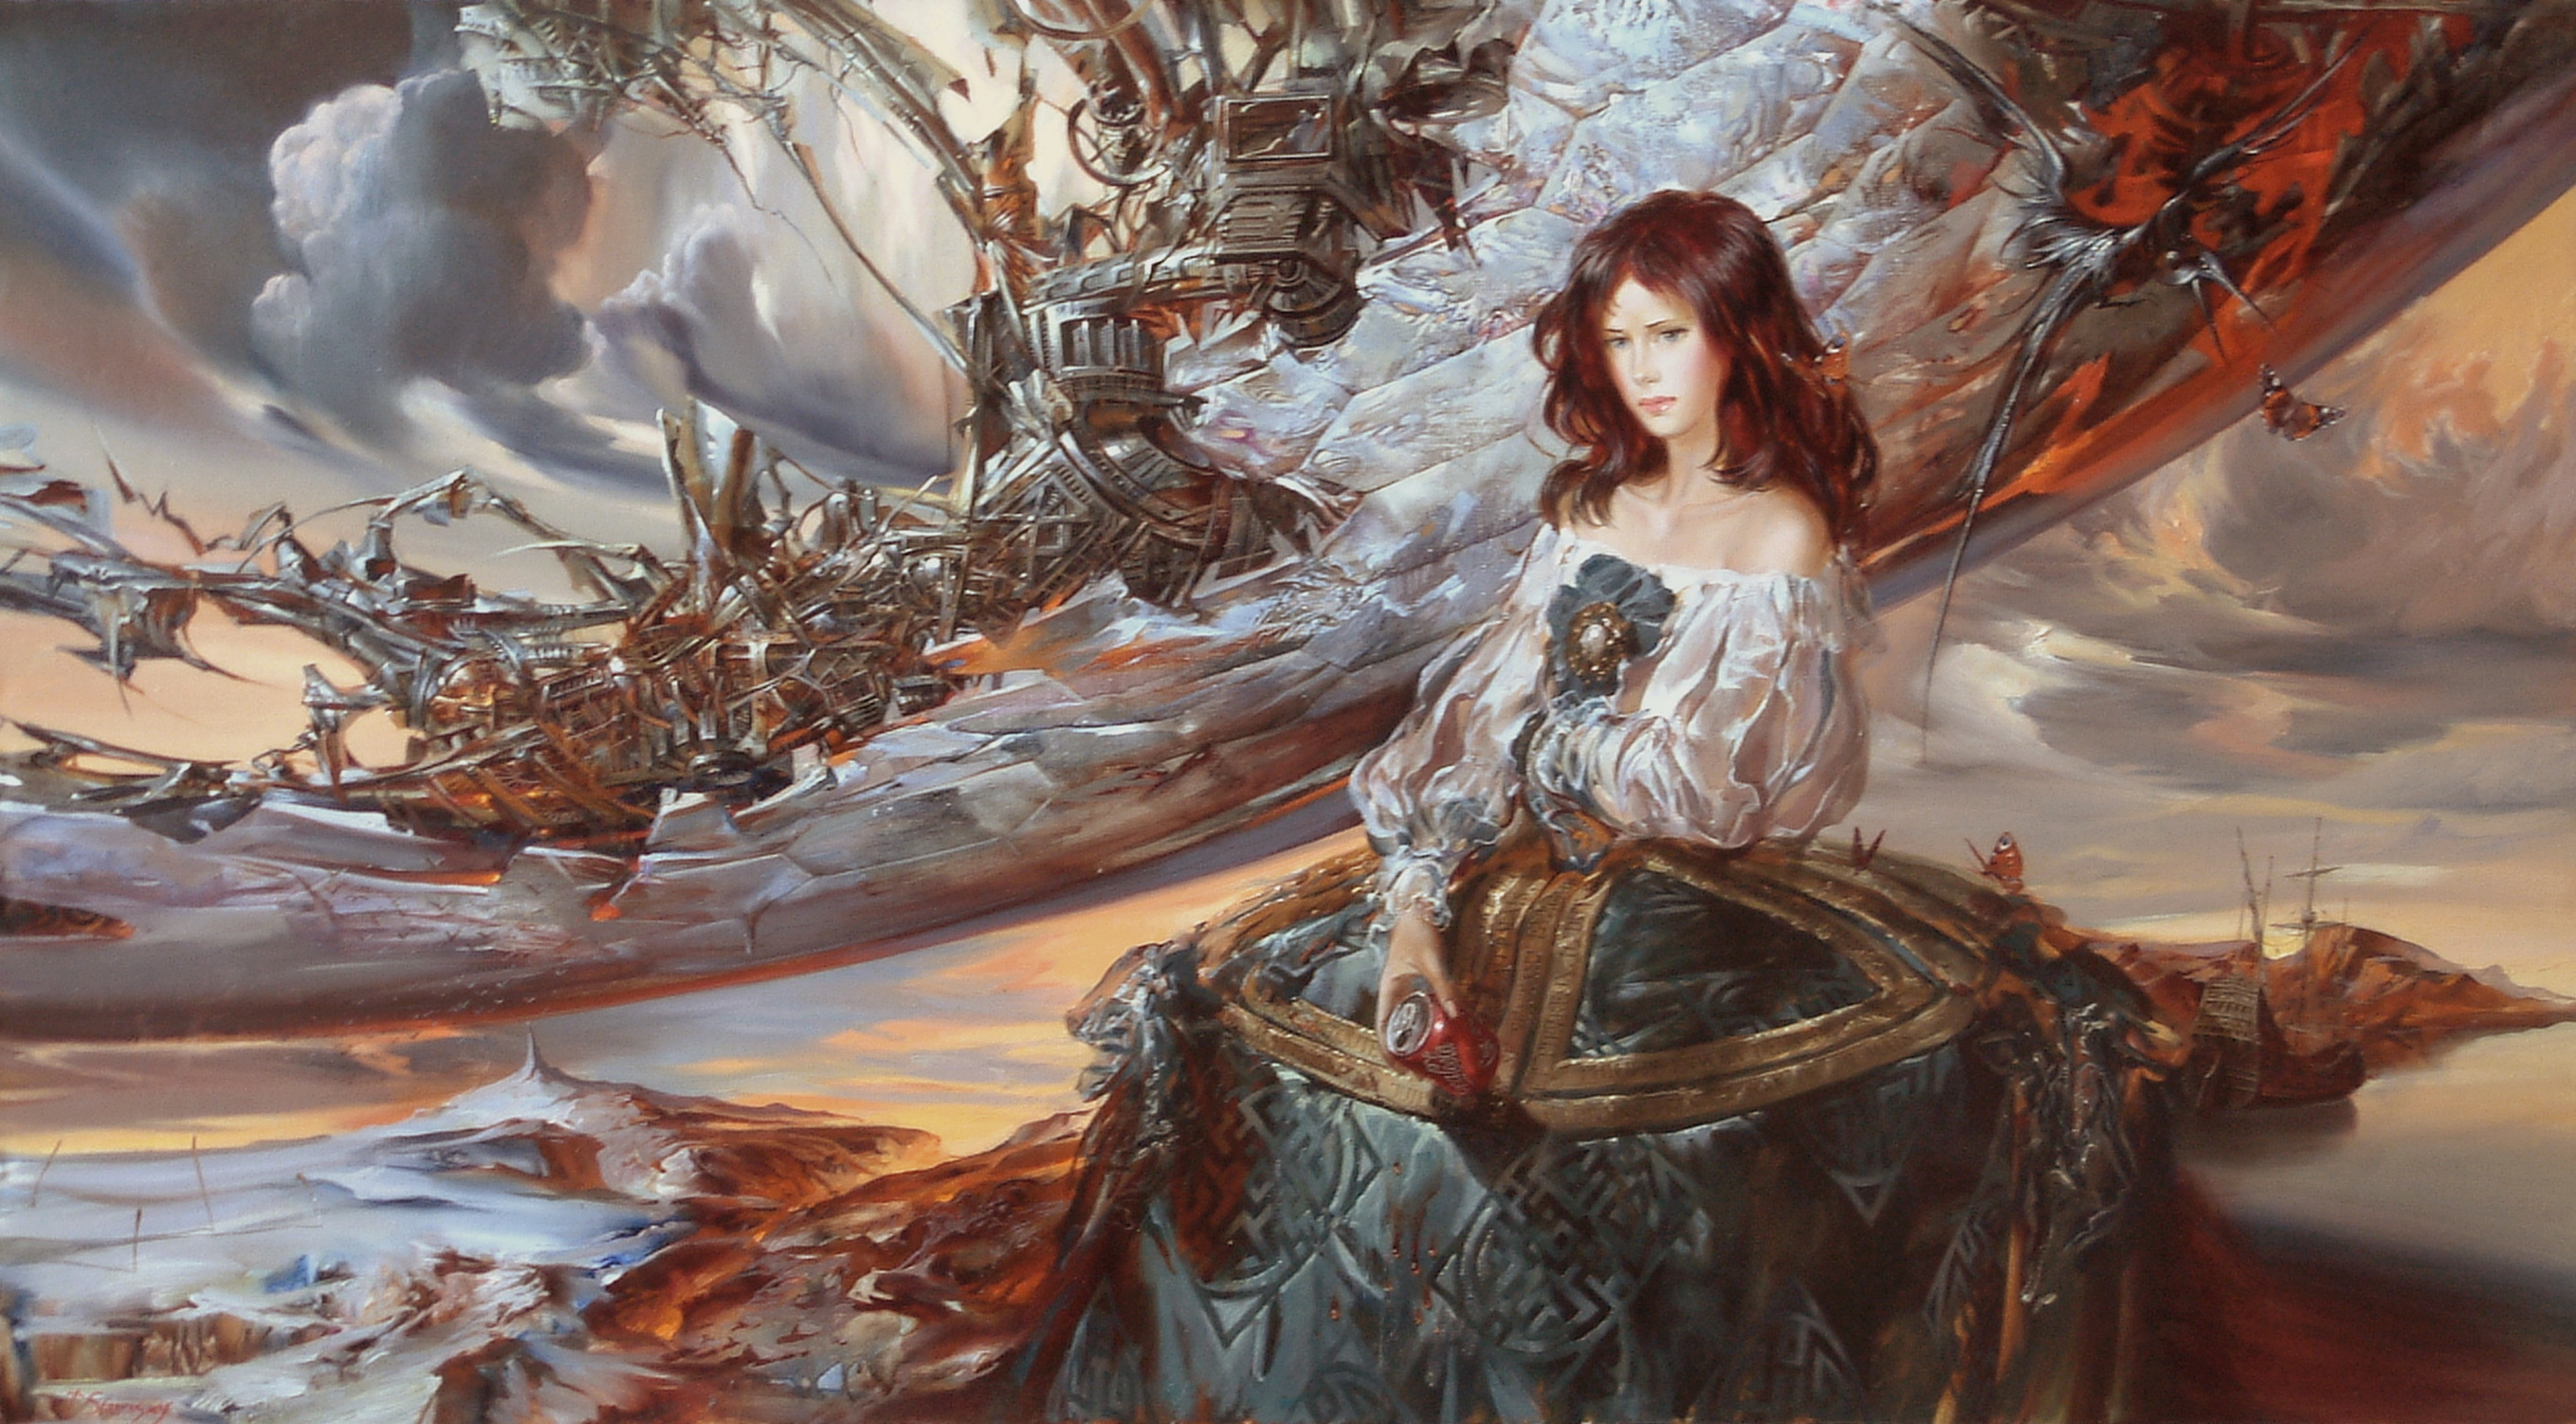 Steampunk Girl Wallpaper Images Crazy Gallery 2717x1502